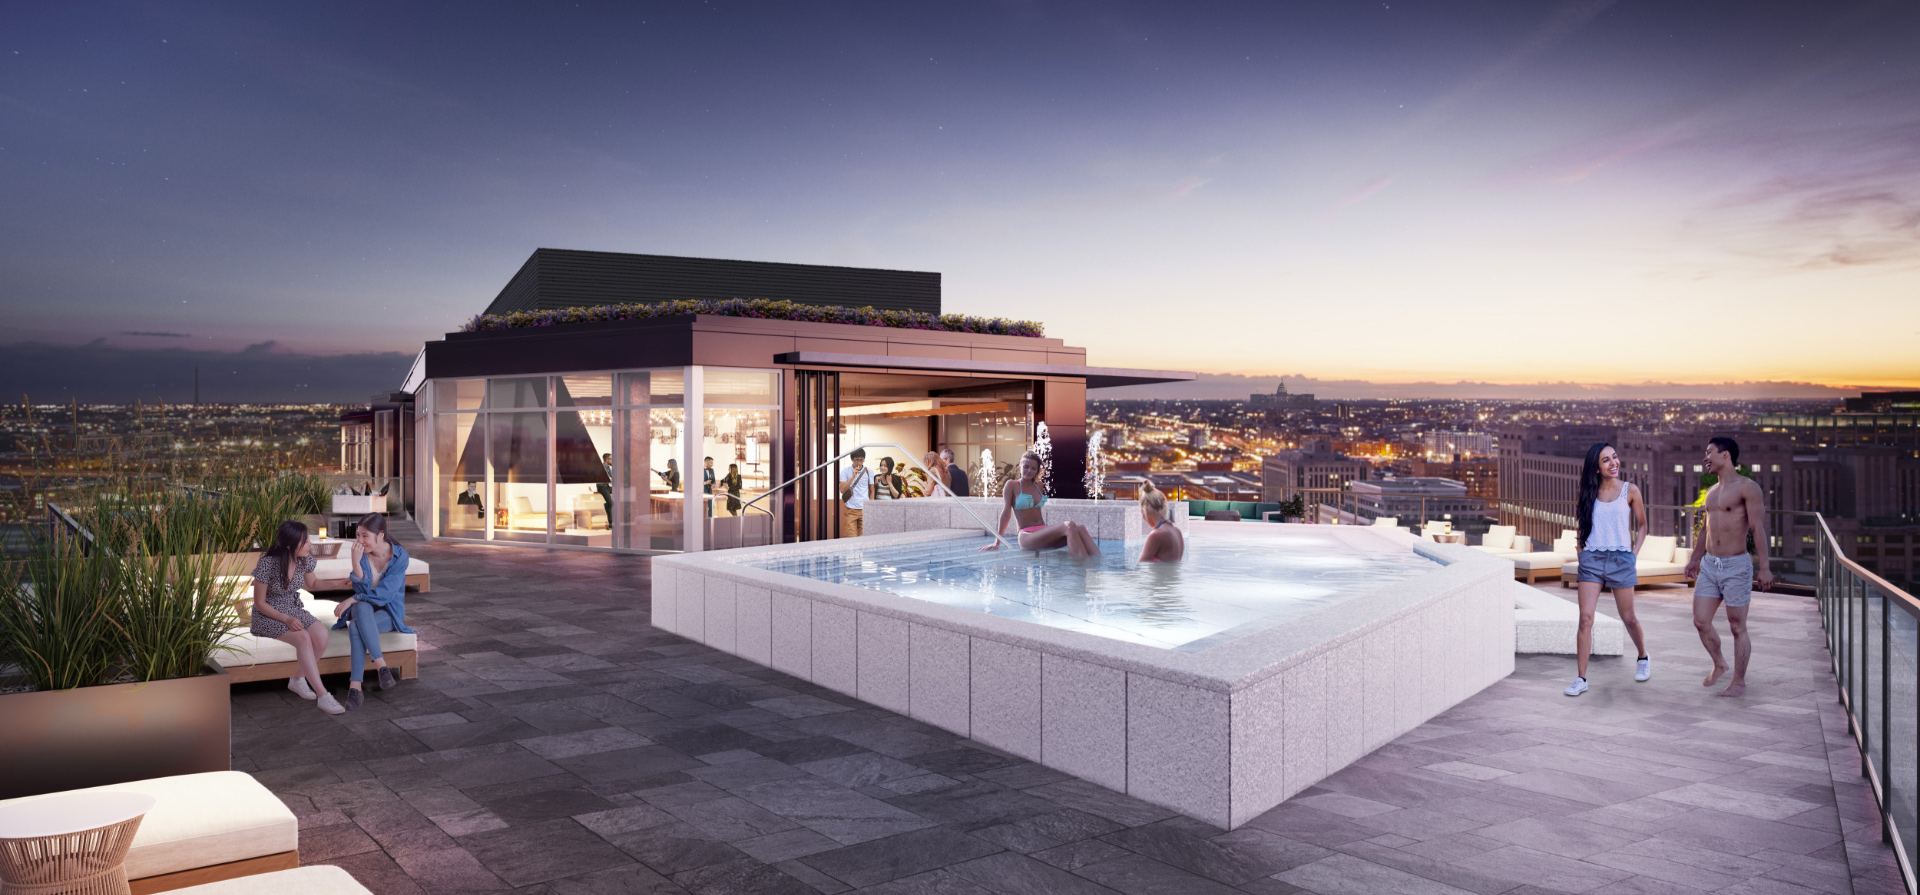 rooftop pool with people swimming and socializing